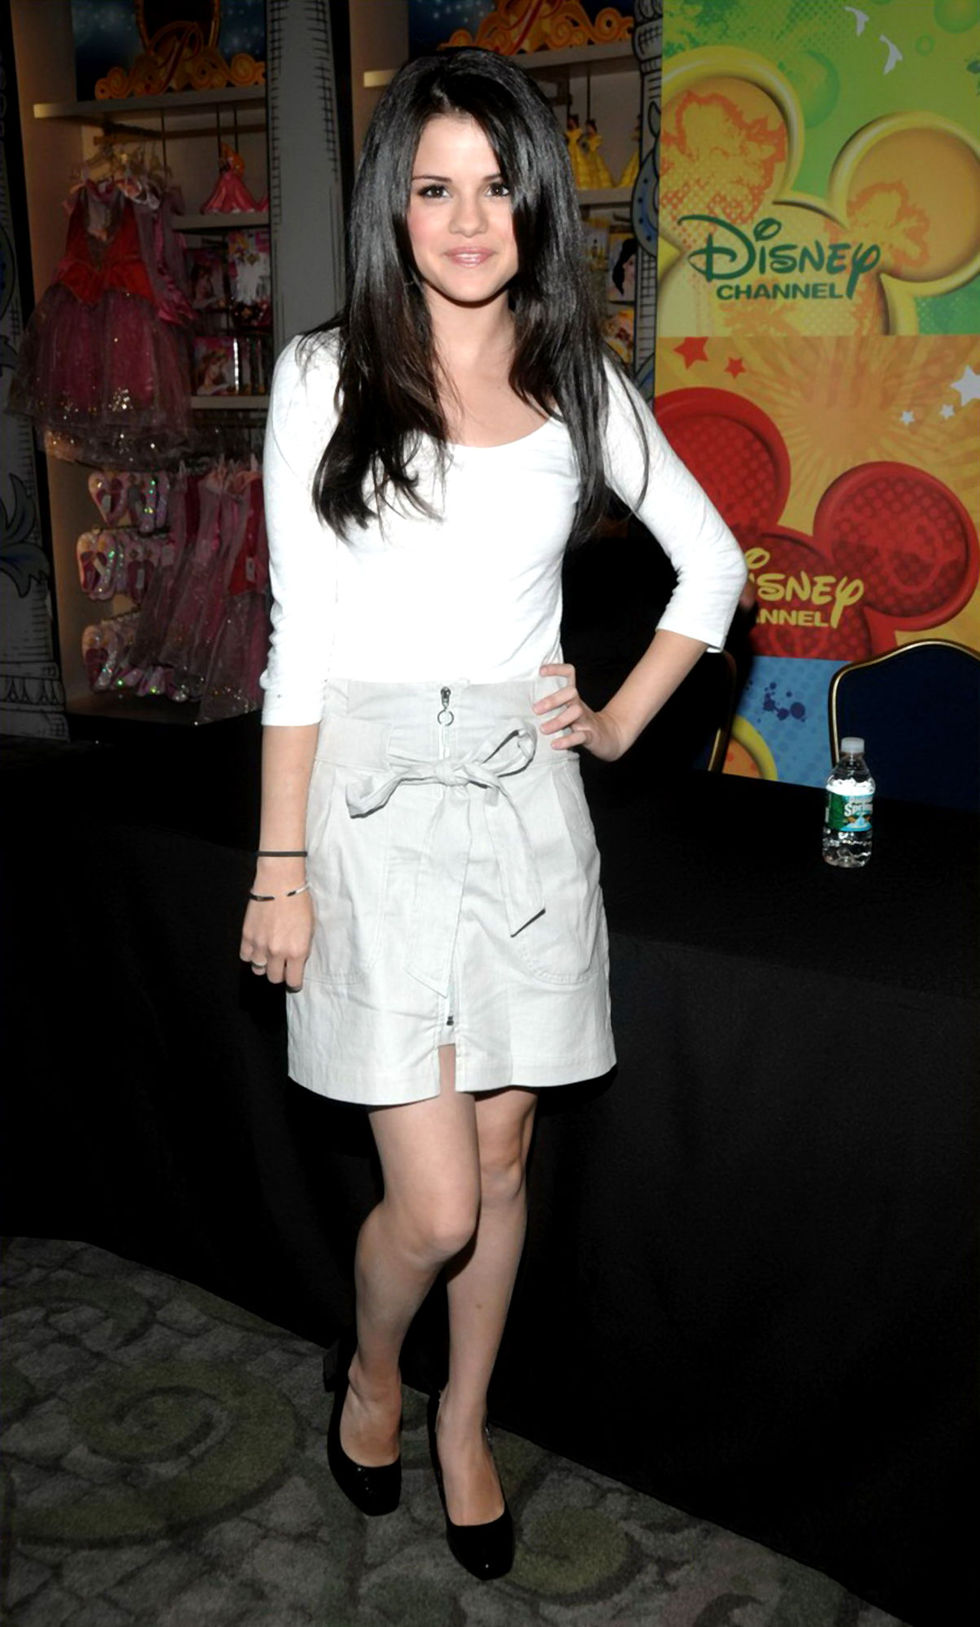 selena-gomez-wizards-of-waverly-place-press-conference-01